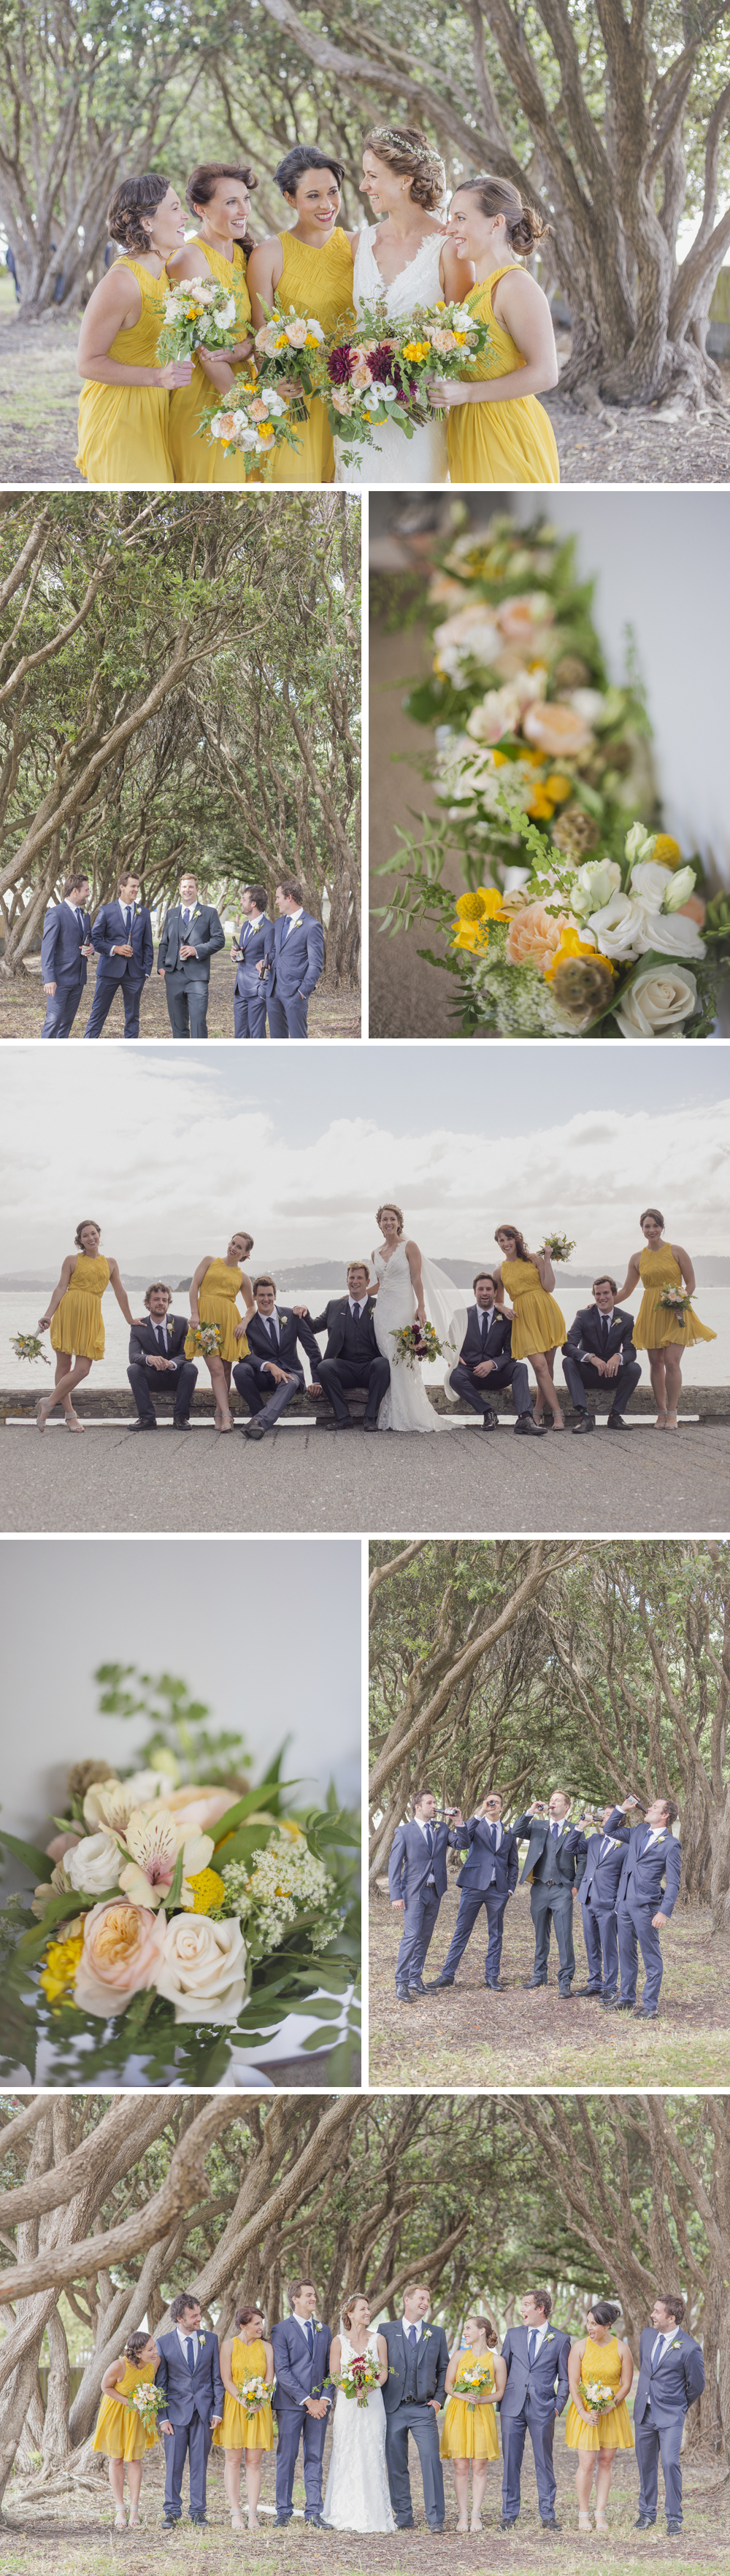 Wedding Photography in Eastbourne, Wellington, NZ.